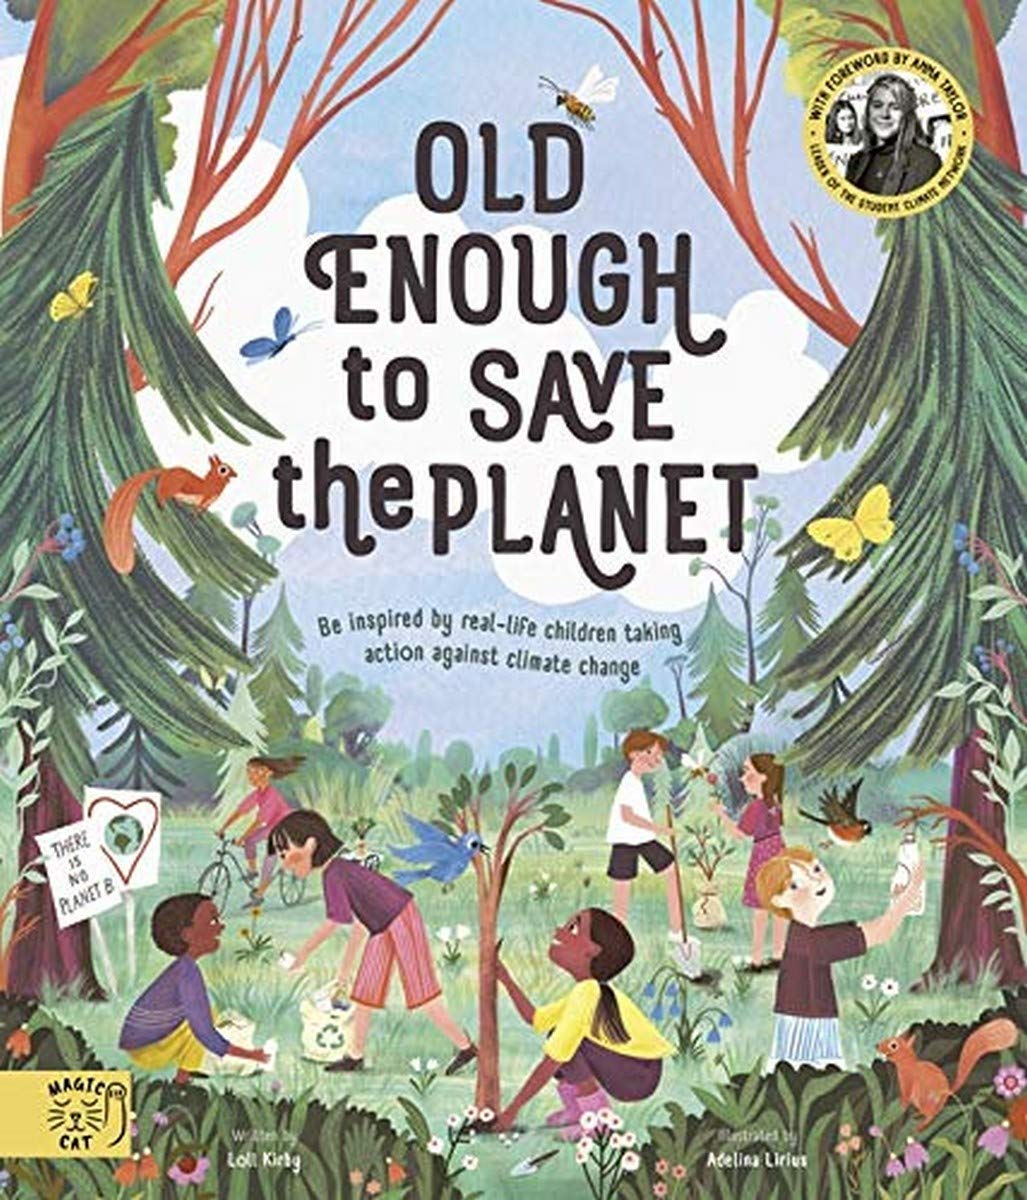 Old Enough to Save the Planet: With a foreword from the leaders of the School  Strike for Climate Change: Amazon.co.uk: Taylor, Anna, Kirby, Loll, Lirius,  Adelina: 9781913520175: Books